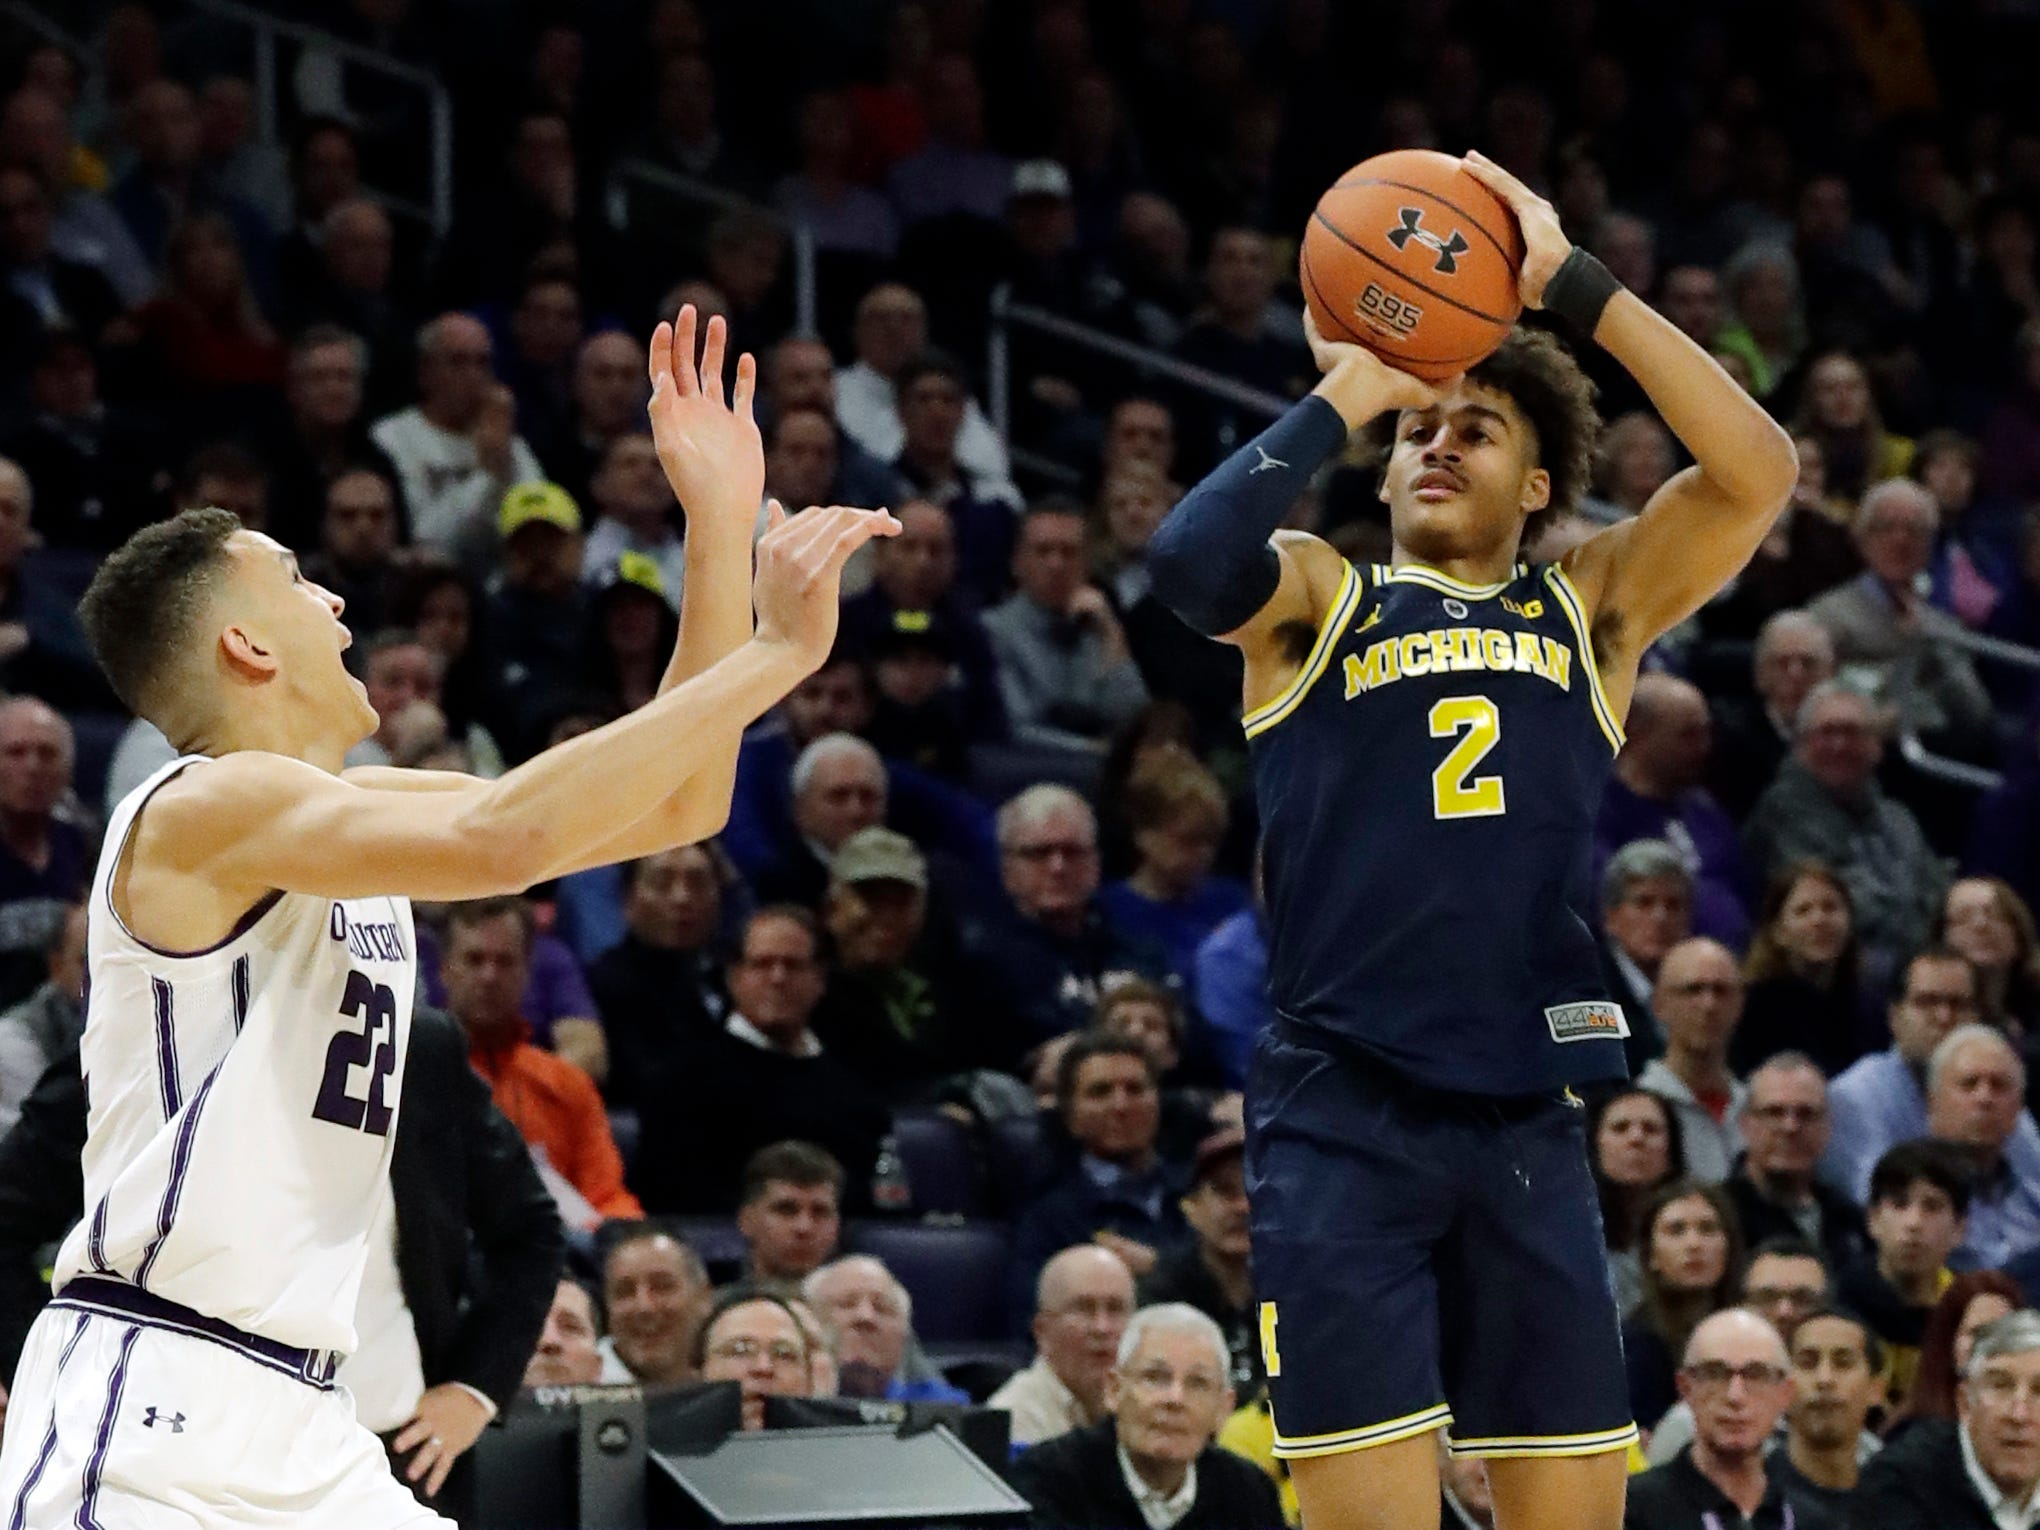 Michigan guard Jordan Poole shoots against Northwestern forward Pete Nance during the first half Tuesday, Dec. 4, 2018, in Evanston, Ill.